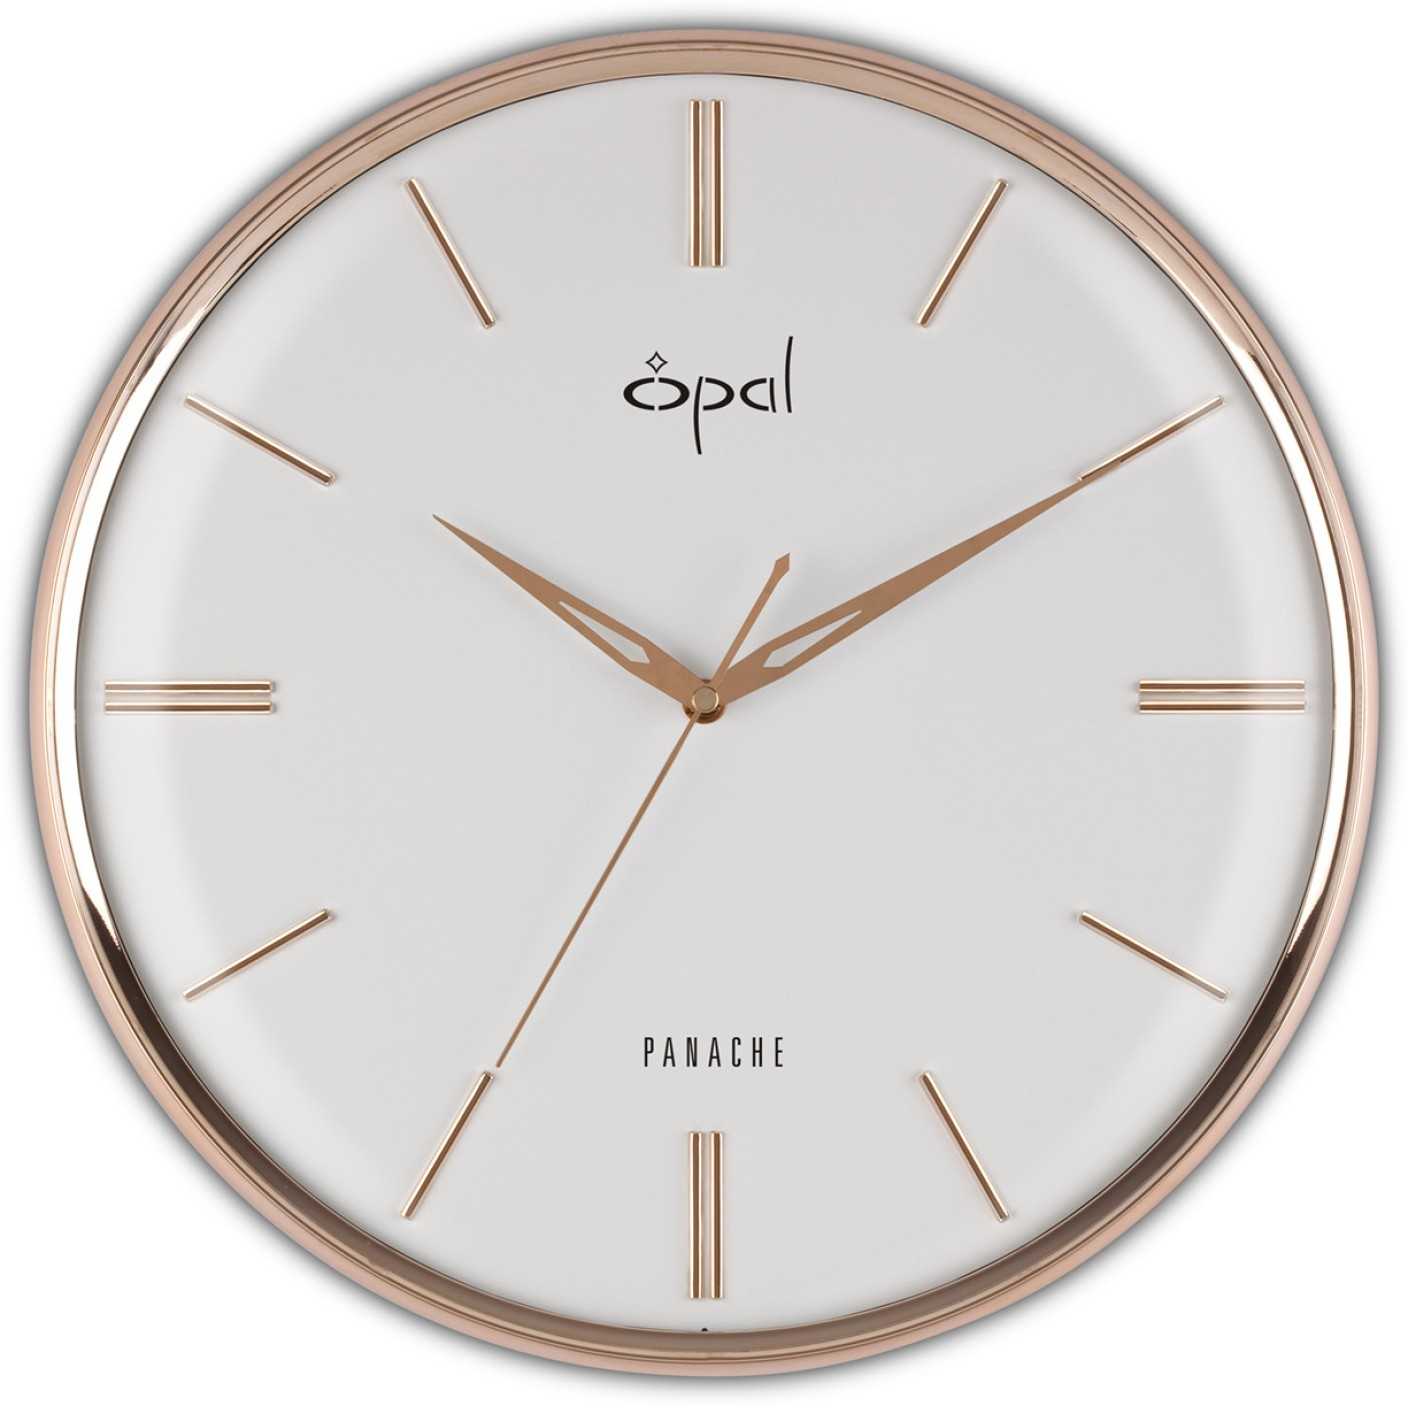 Opal analog wall clock price in india buy opal analog wall clock opal analog wall clock add to cart amipublicfo Choice Image